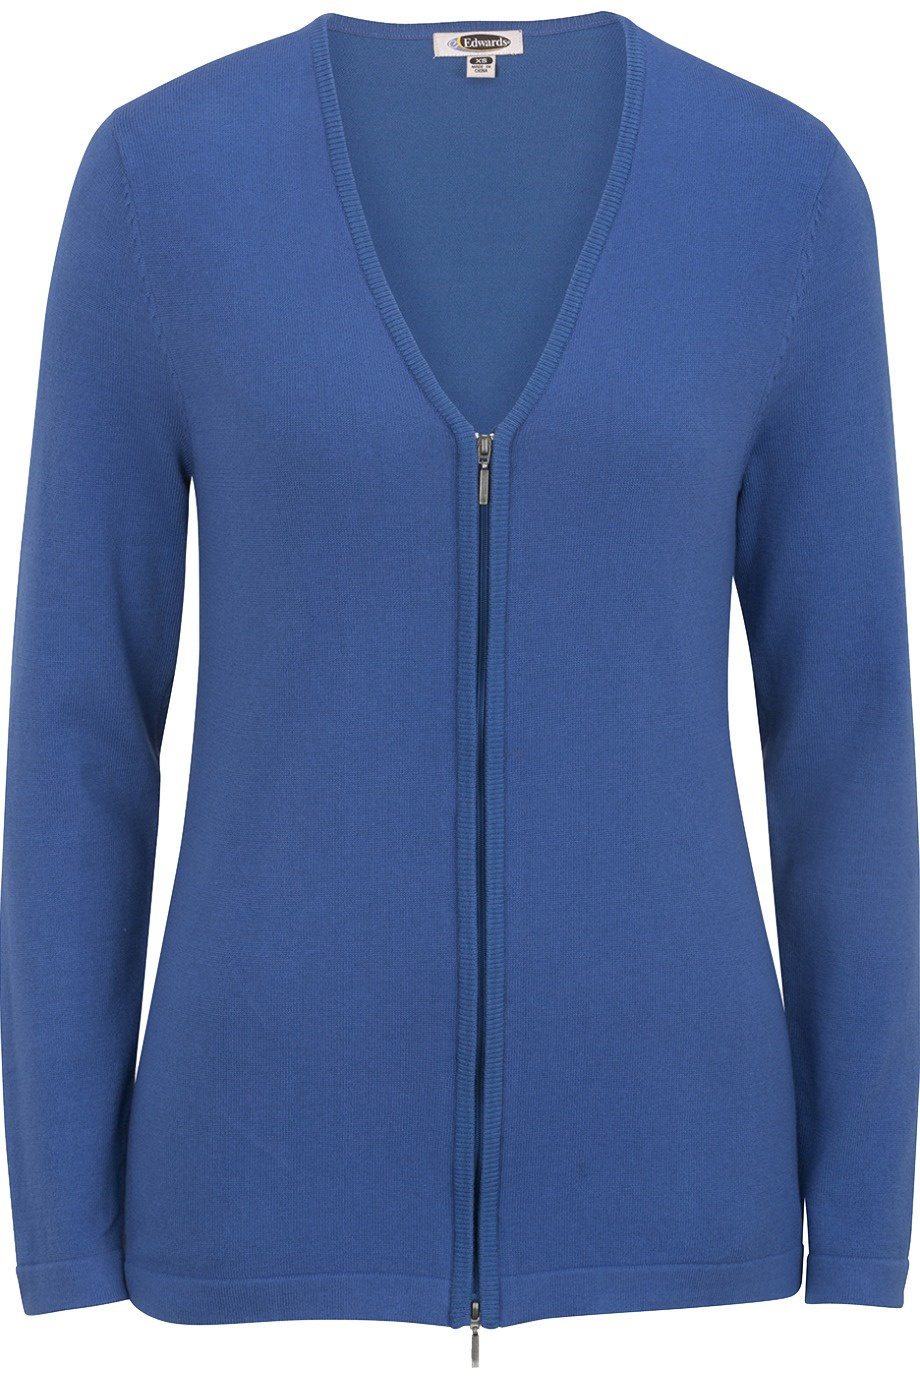 'Edwards 7062 Ladies' Full Zip V-Neck Cardigan Sweater'